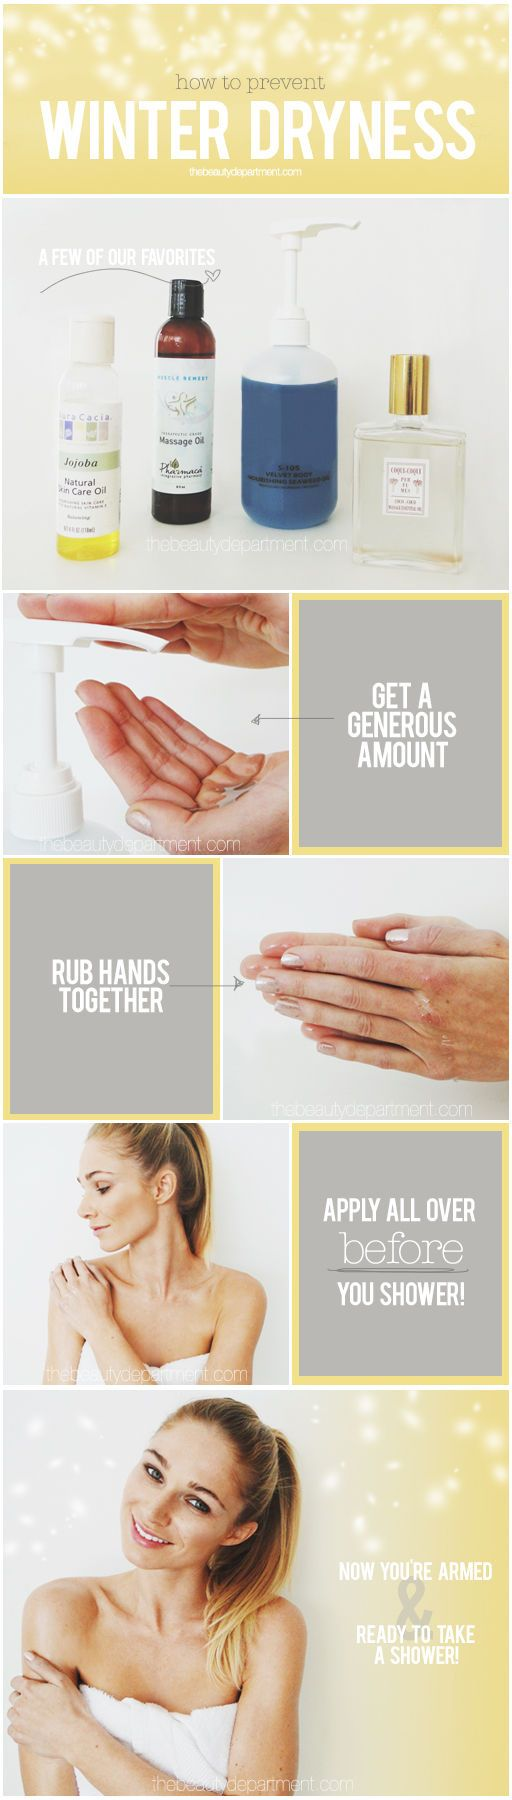 14 best Taking Care of You... images on Pinterest